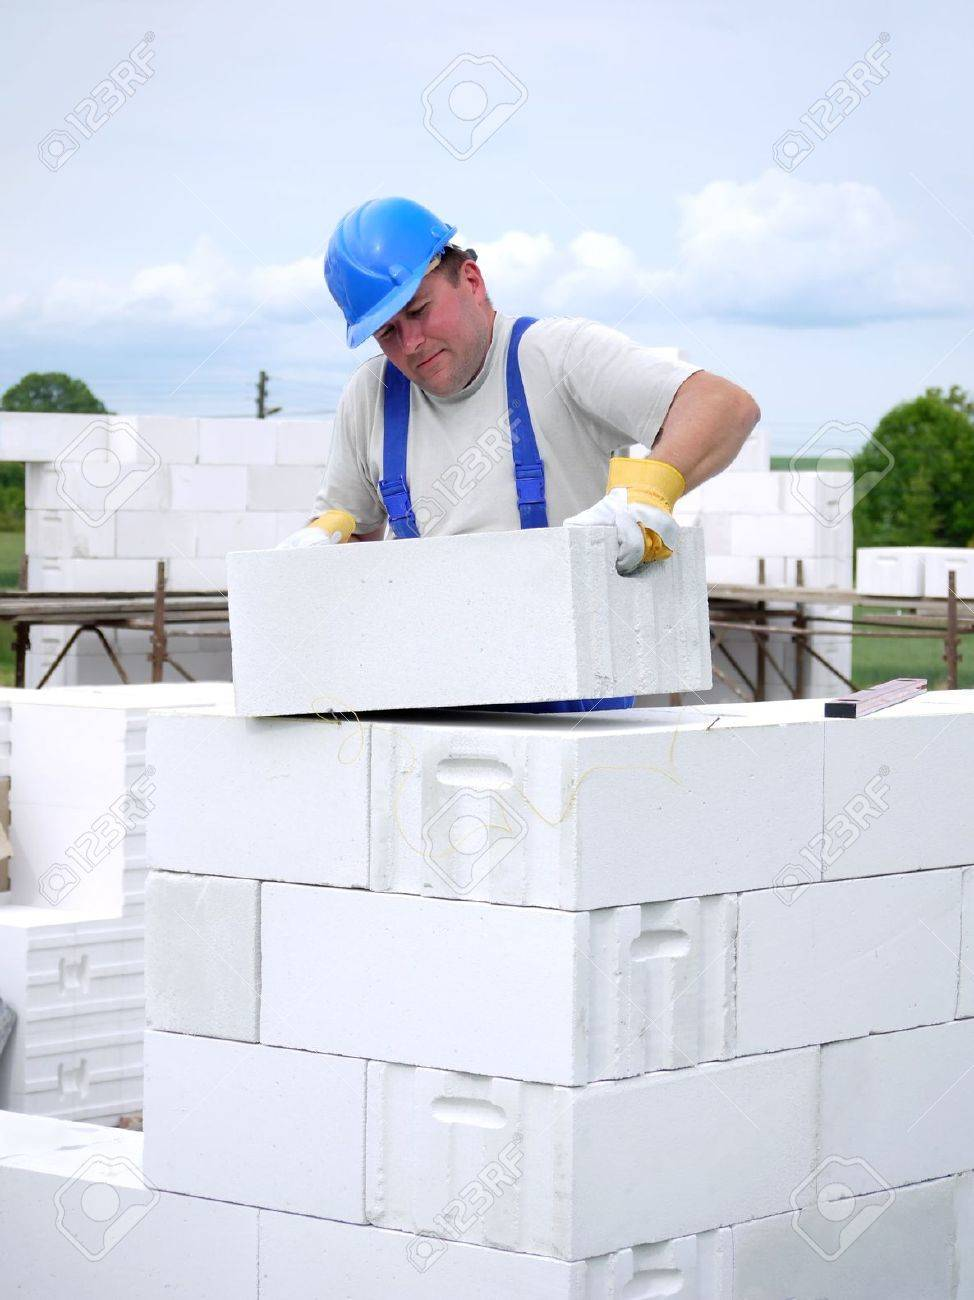 Mason building house walls from white aerated autoclaved concrete blocks Stock Photo - 4984560